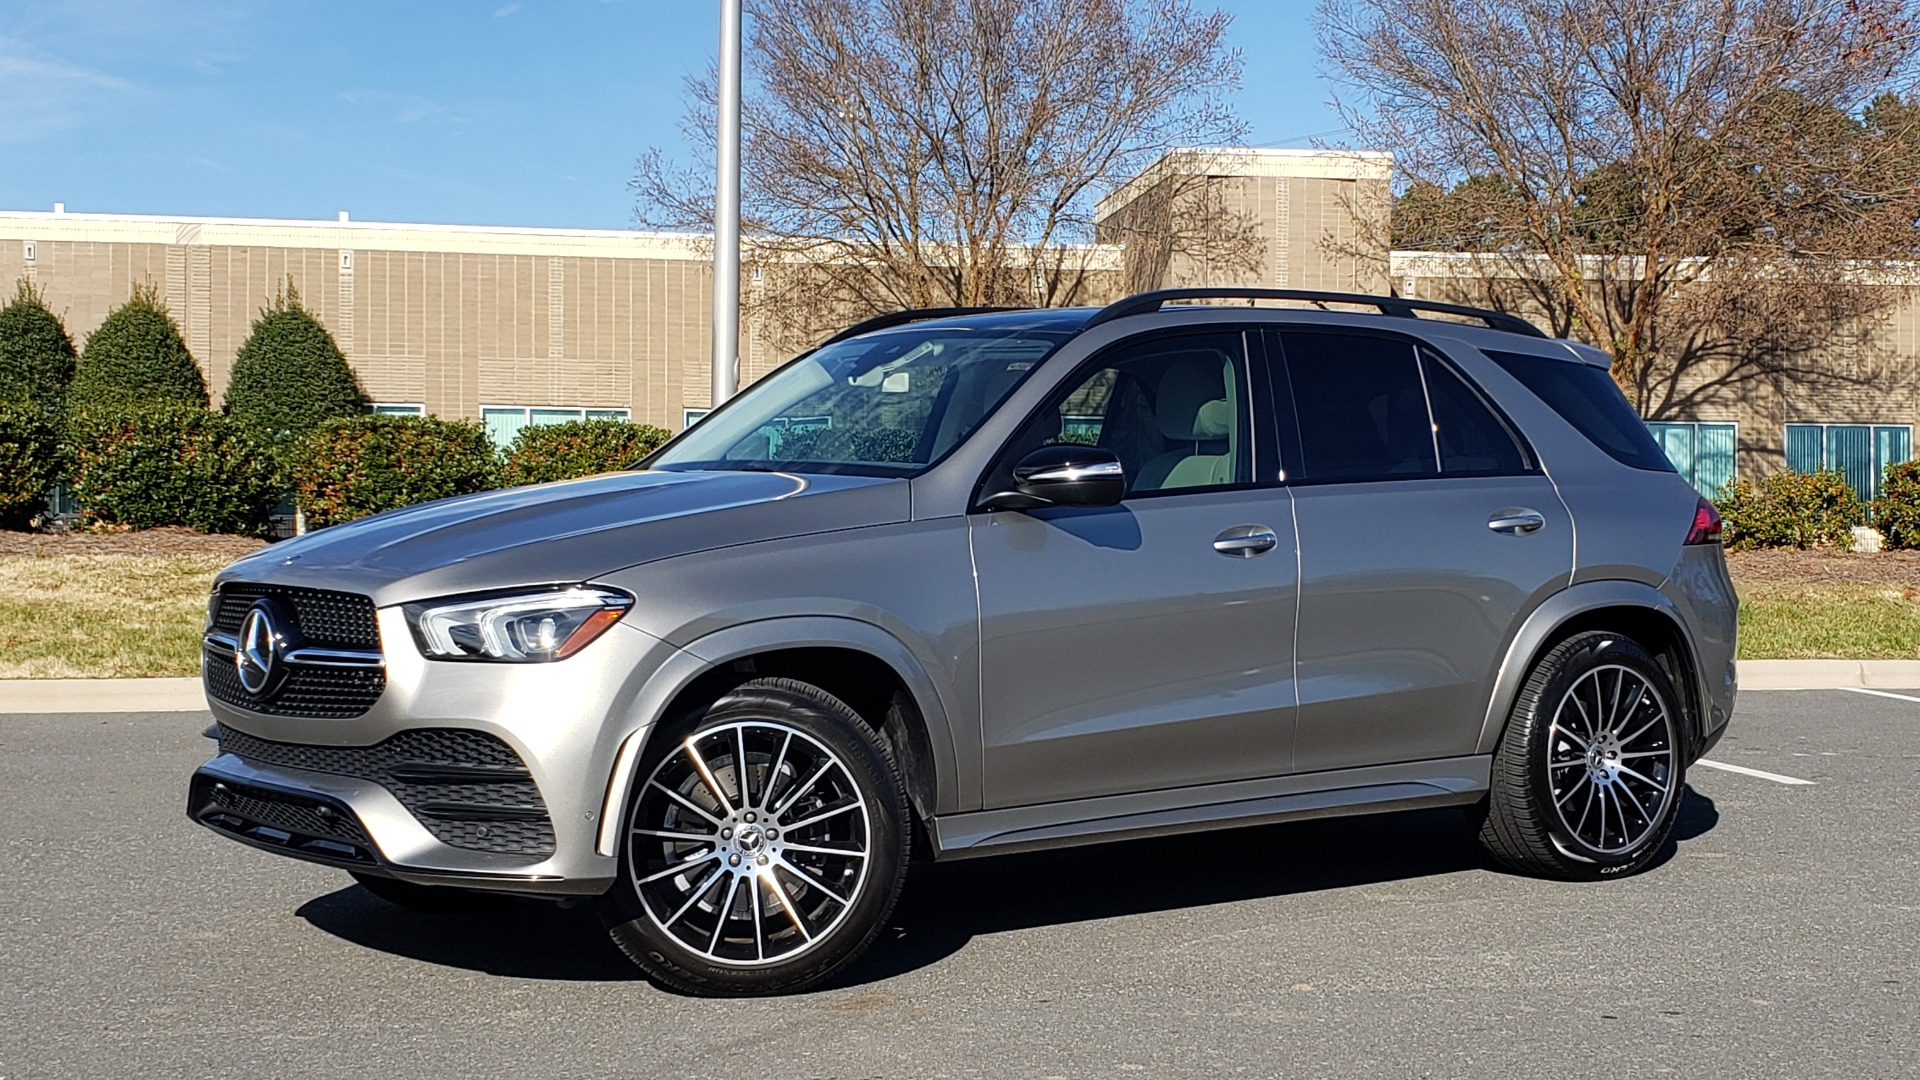 Used 2020 Mercedes-Benz GLE 350 PREMIUM / NAV / PARK ASST / NIGHT PKG / AMG LINE EXT / REARVIEW for sale Sold at Formula Imports in Charlotte NC 28227 2